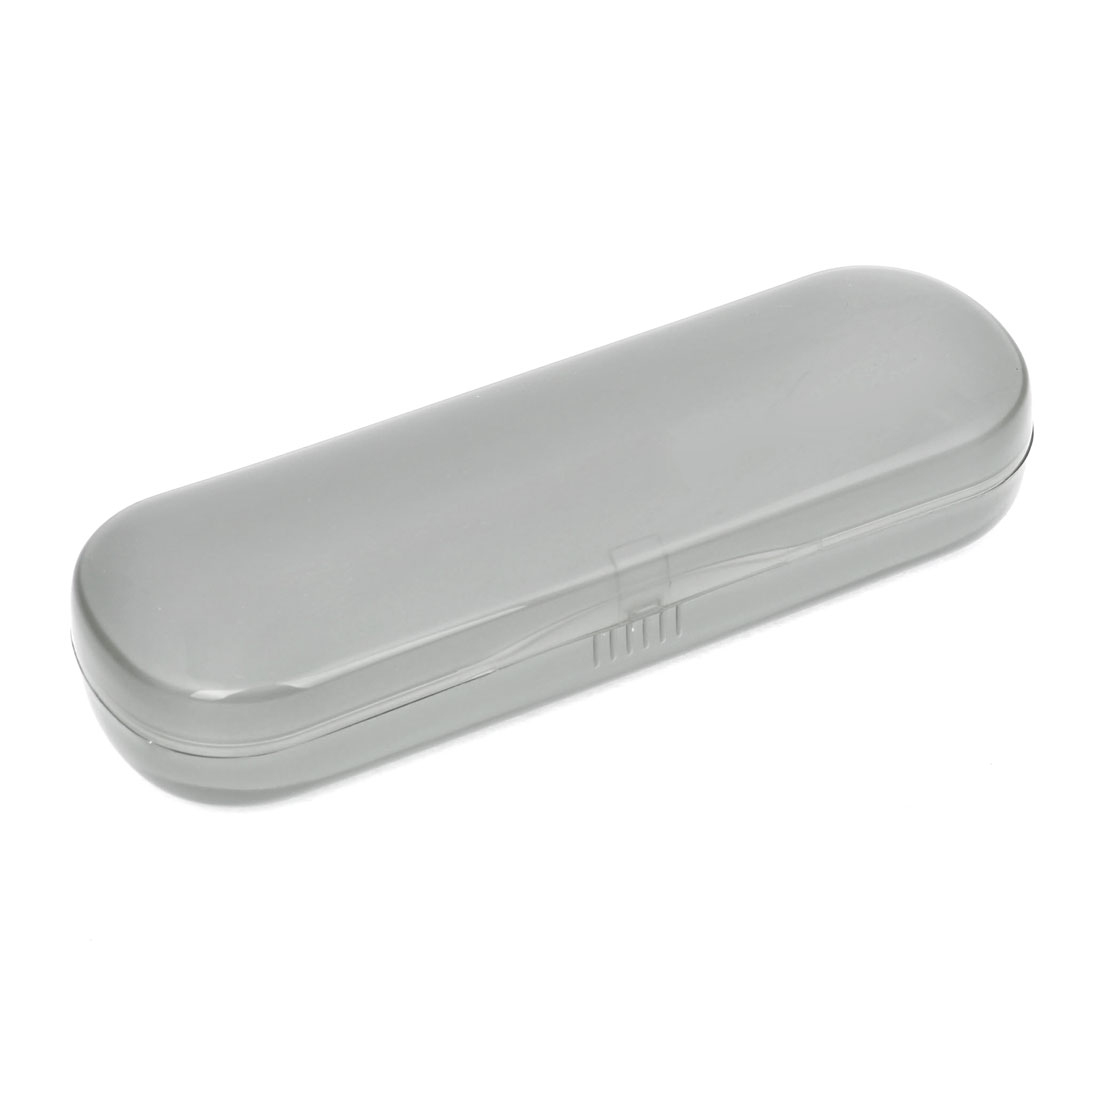 Oval Rectangle Hard Plastic Eyeglasses Case Box Holder Container Clear Gray